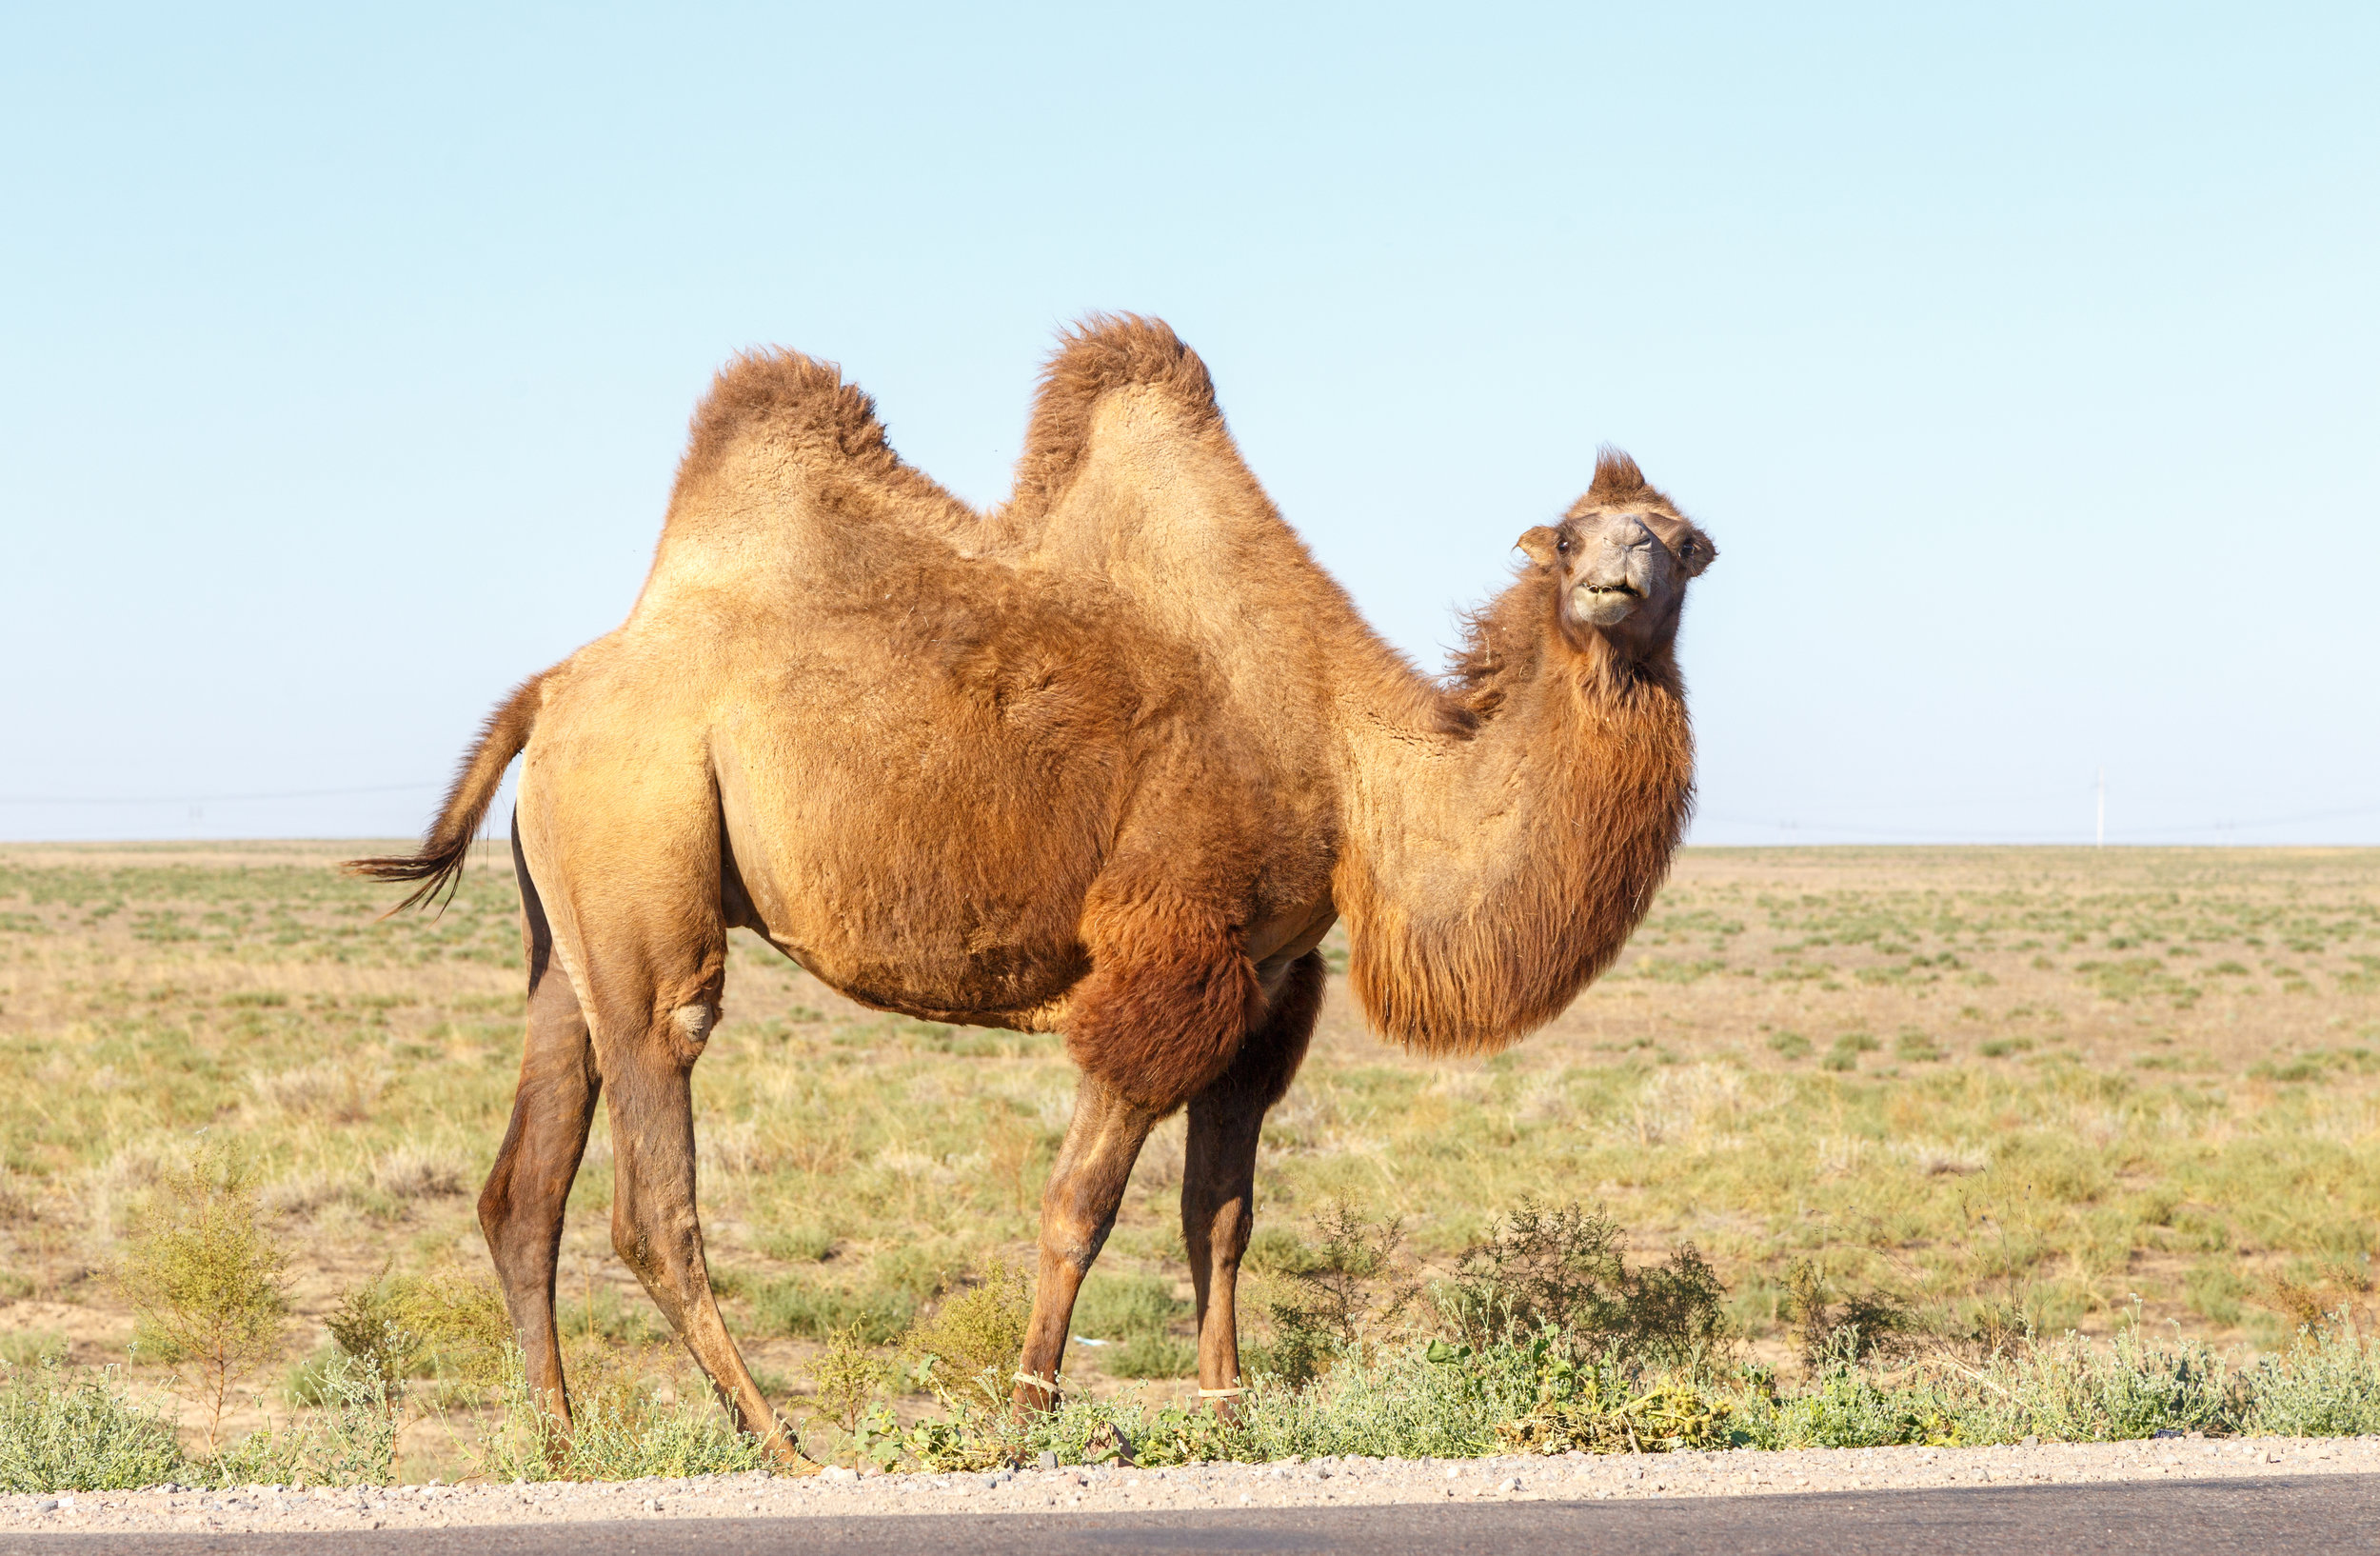 A camel has adapted to survive in the hot desert.